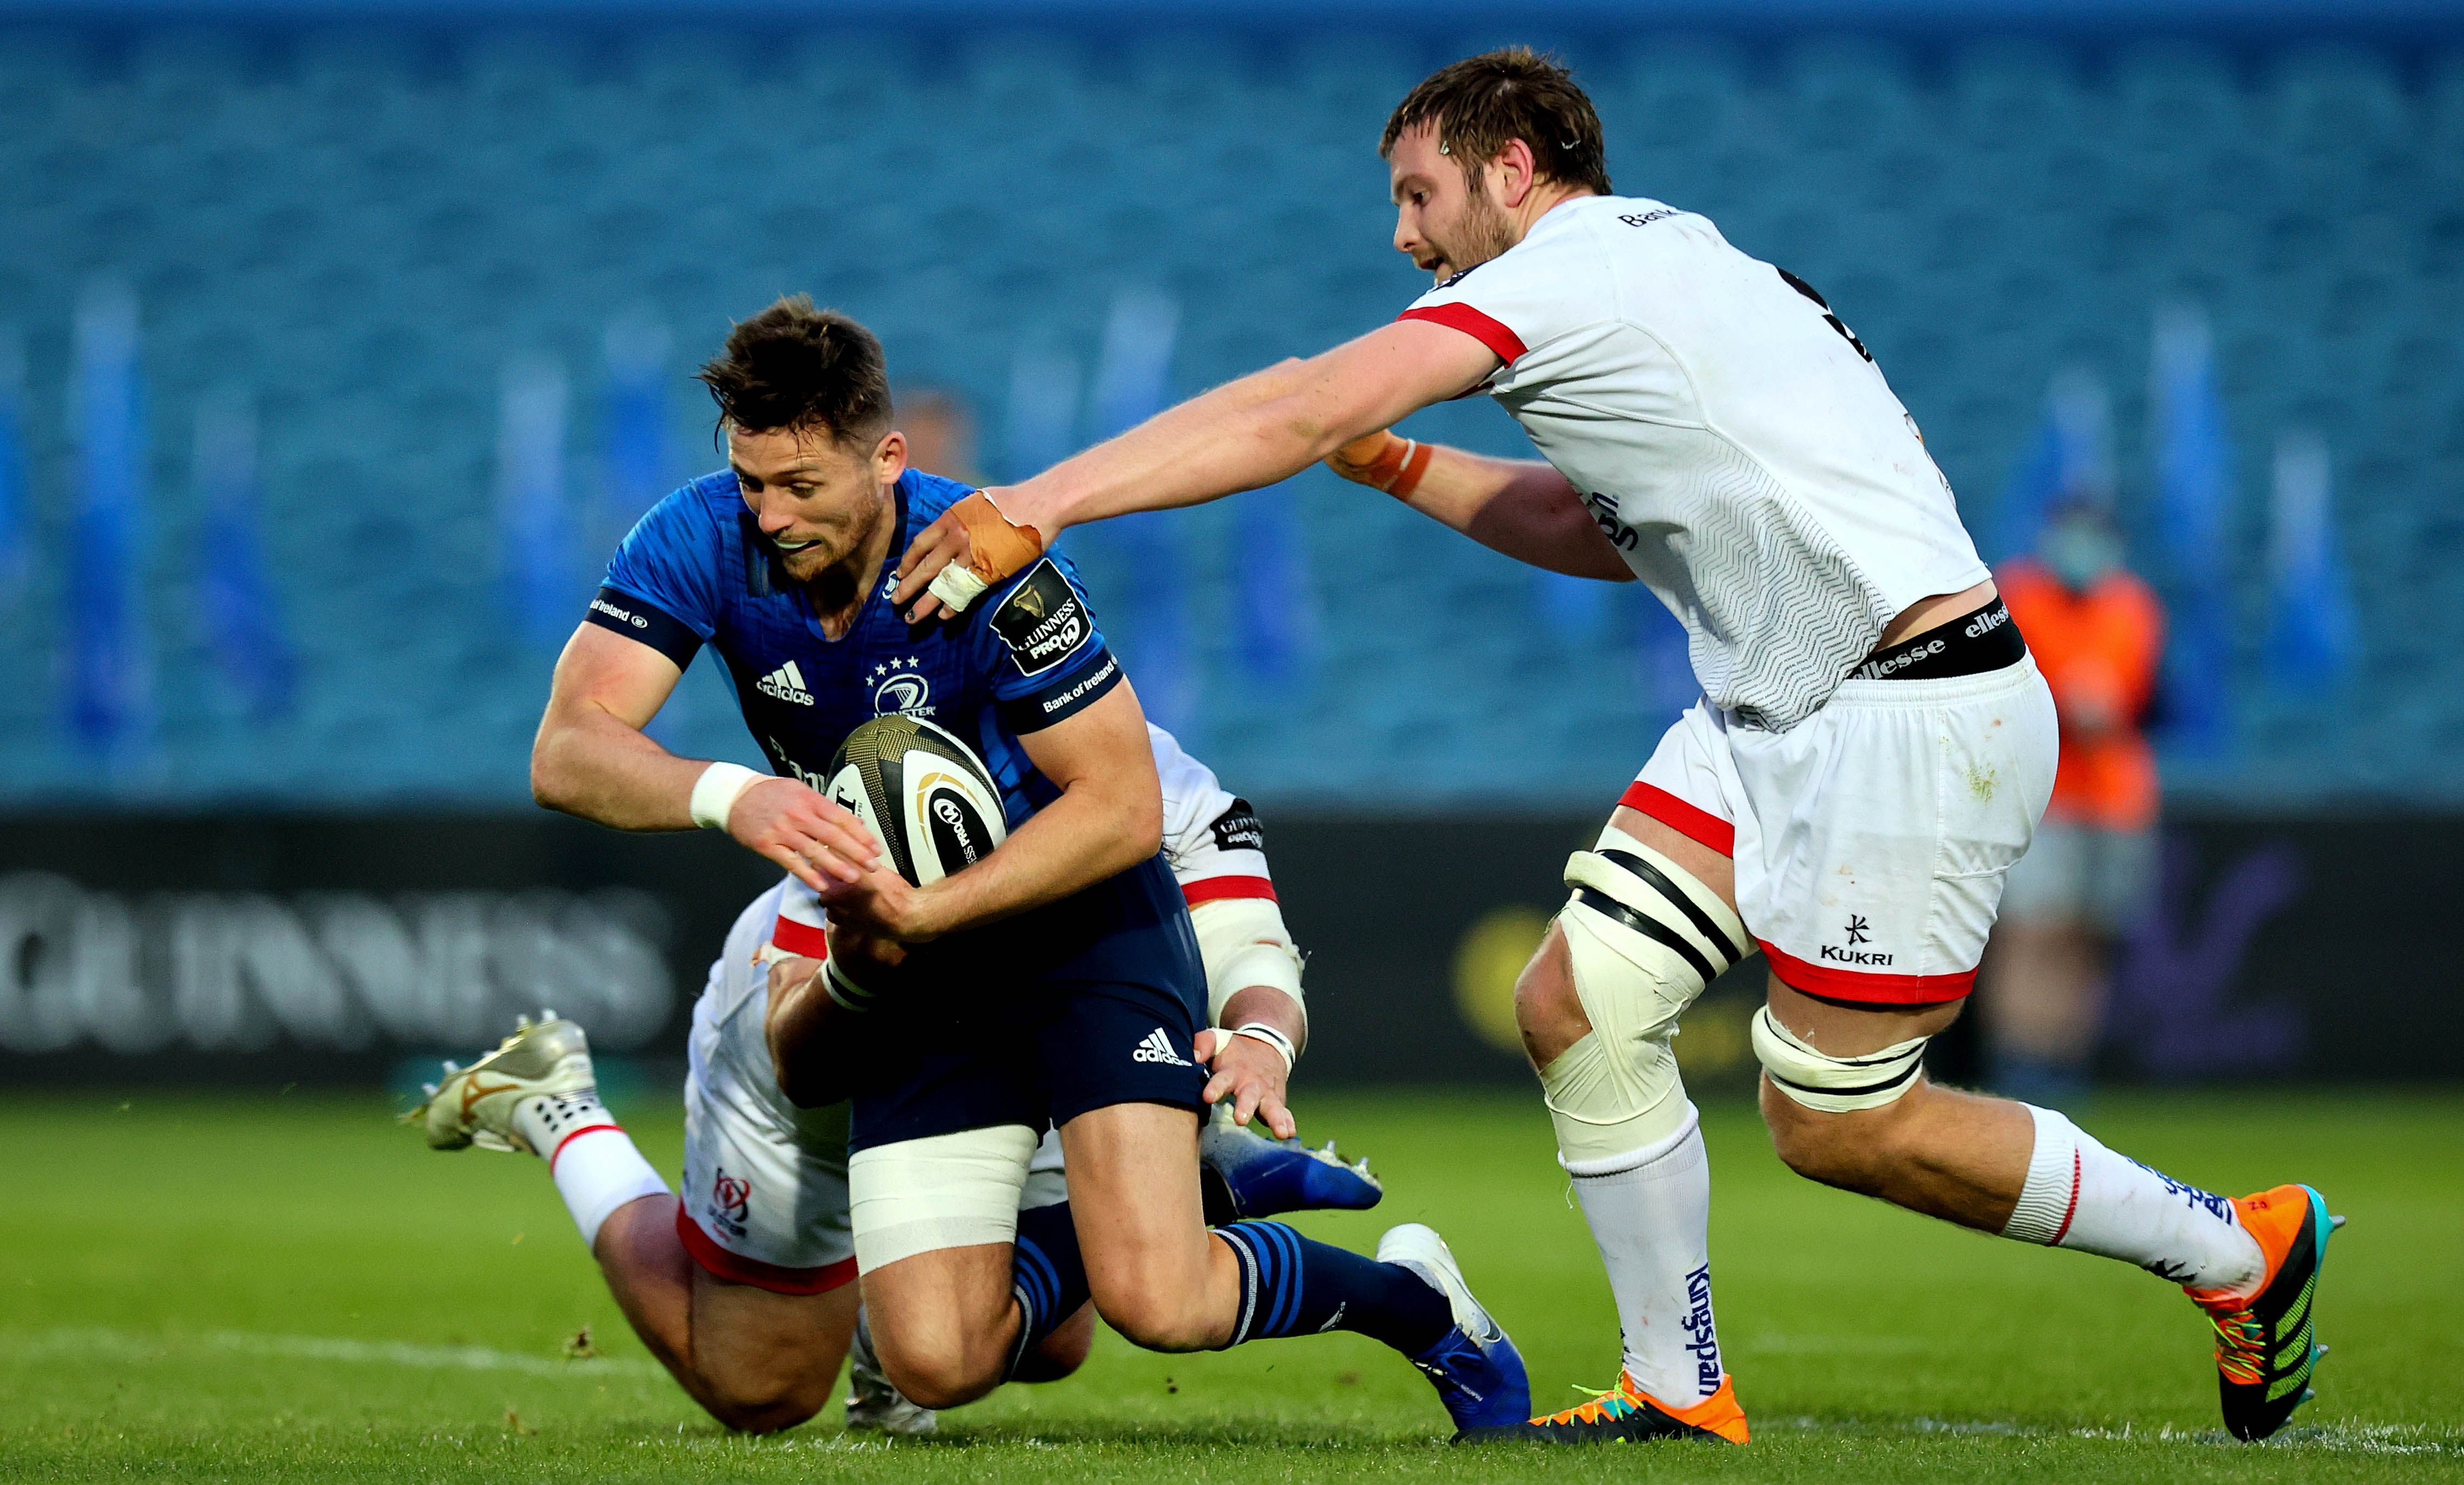 Ulster\'s produced a good performance in defeat to Leinster three weeks ago, but an outbreak of Covid-19 in the squad means they haven\'t played since that game in the RDS